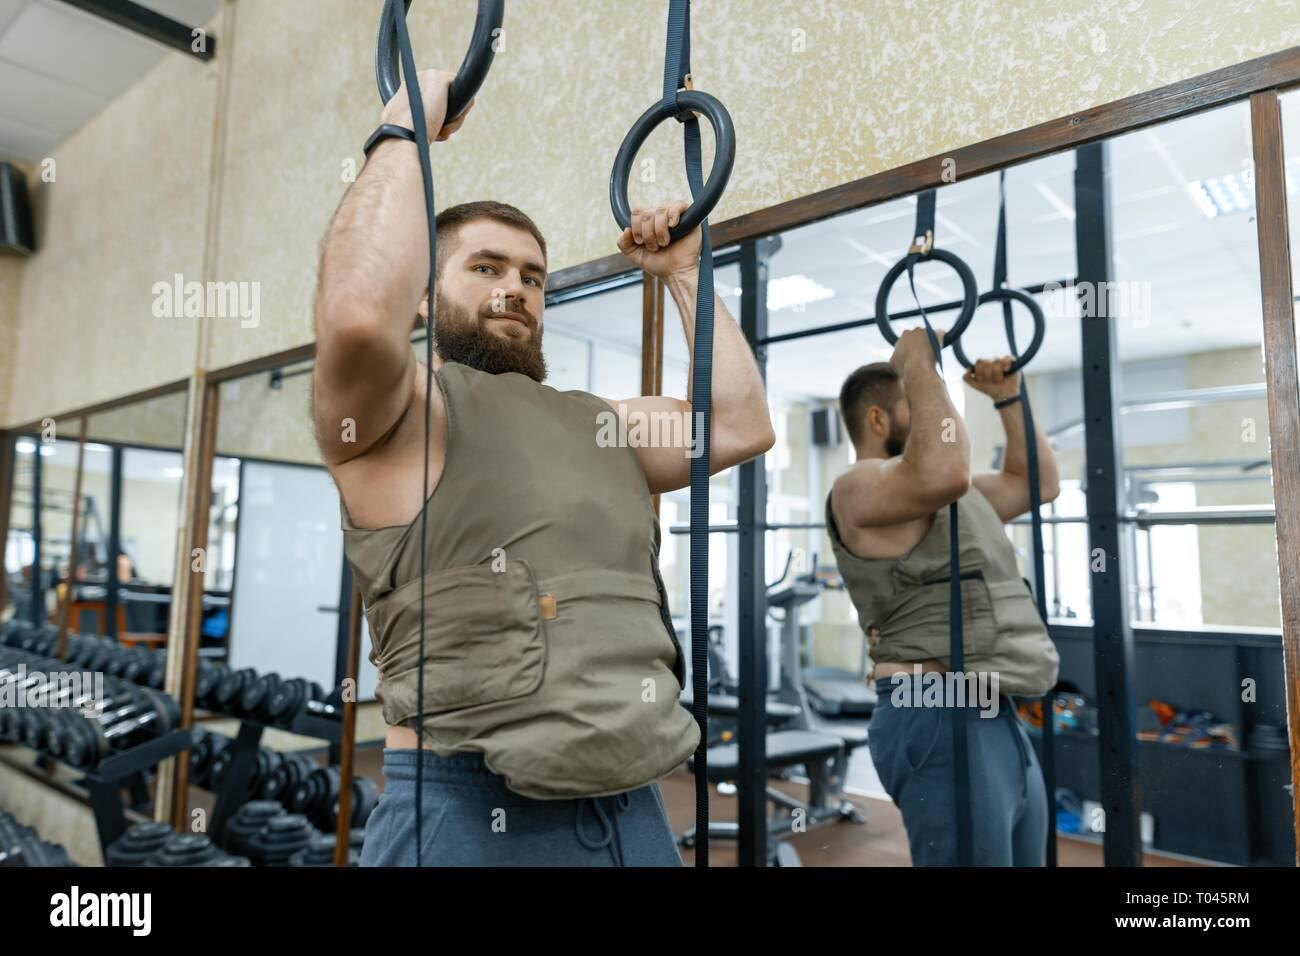 Muscular caucasian bearded man doing exercises dressed in weighted vest in the gym, military style. - Stock Image